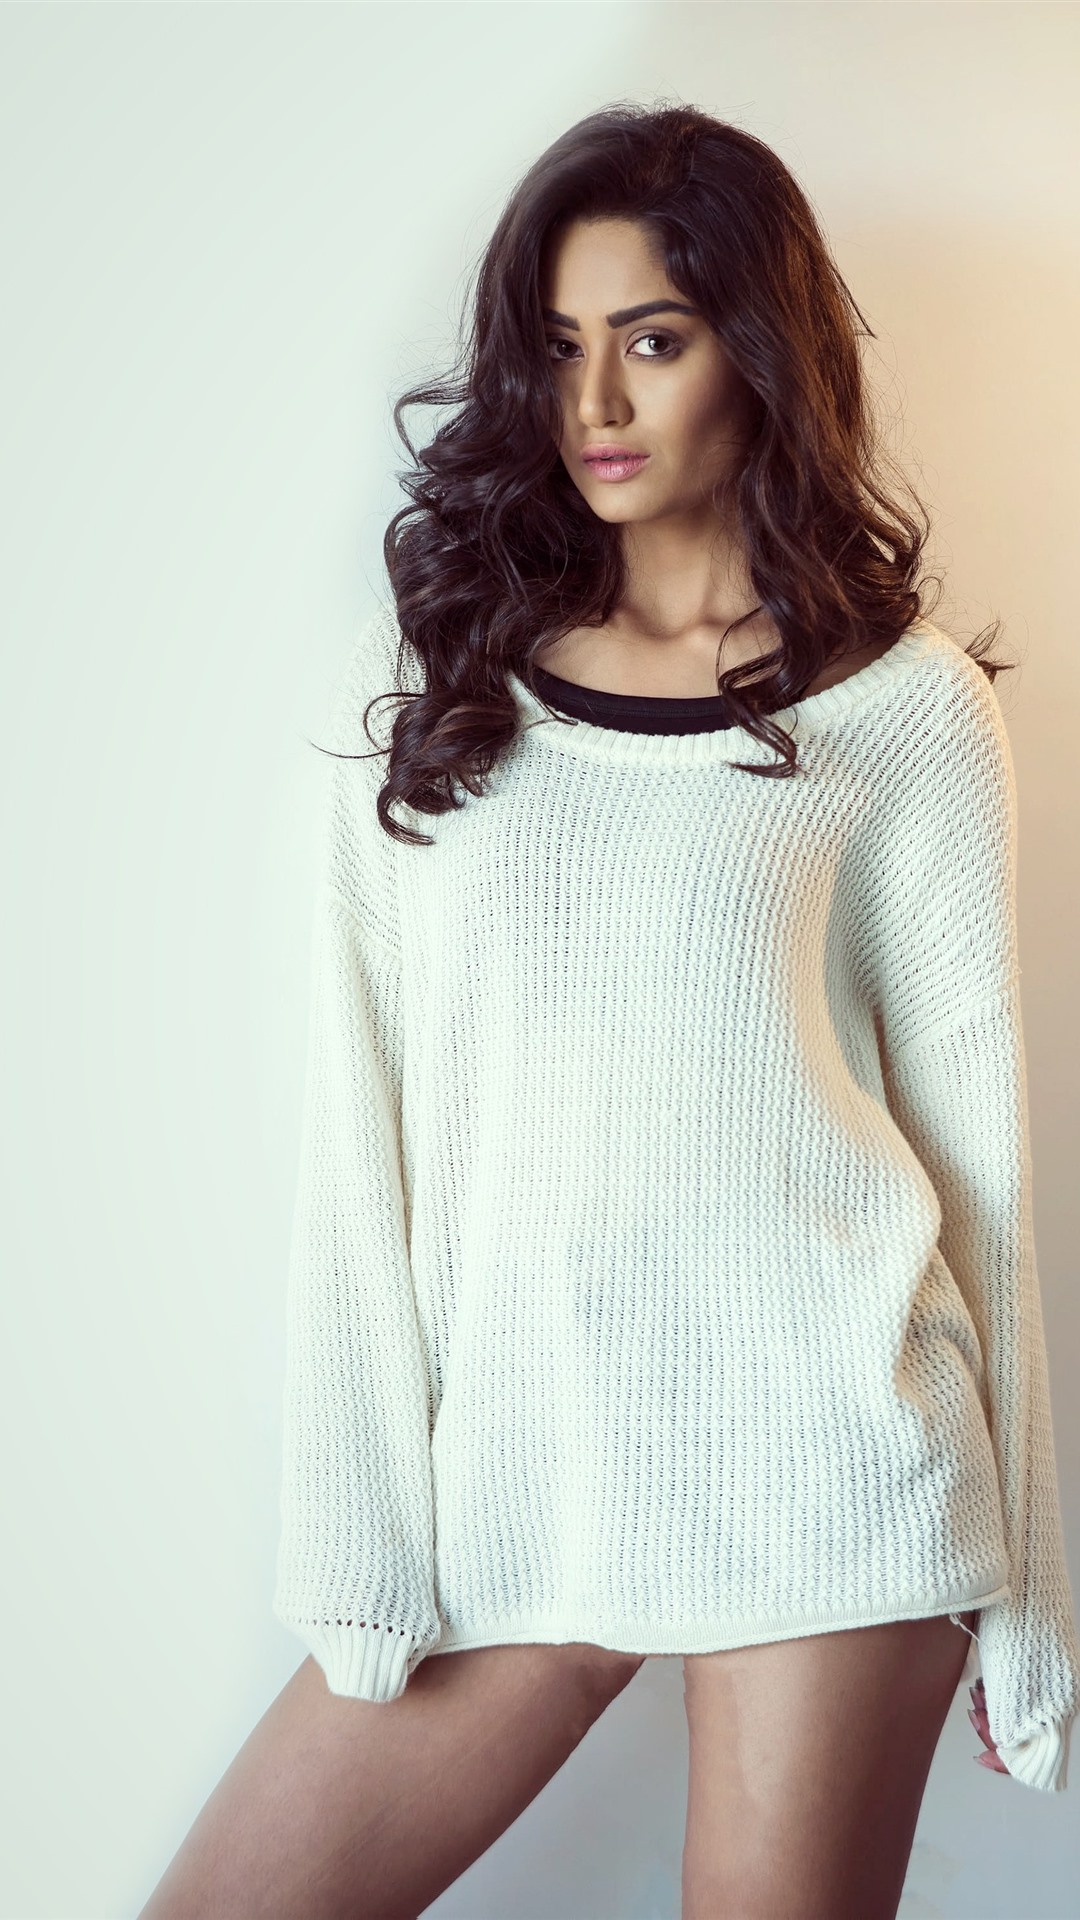 Curly Hair Girl White Sweater Sexy 1242x2688 Iphone 11 Pro Xs